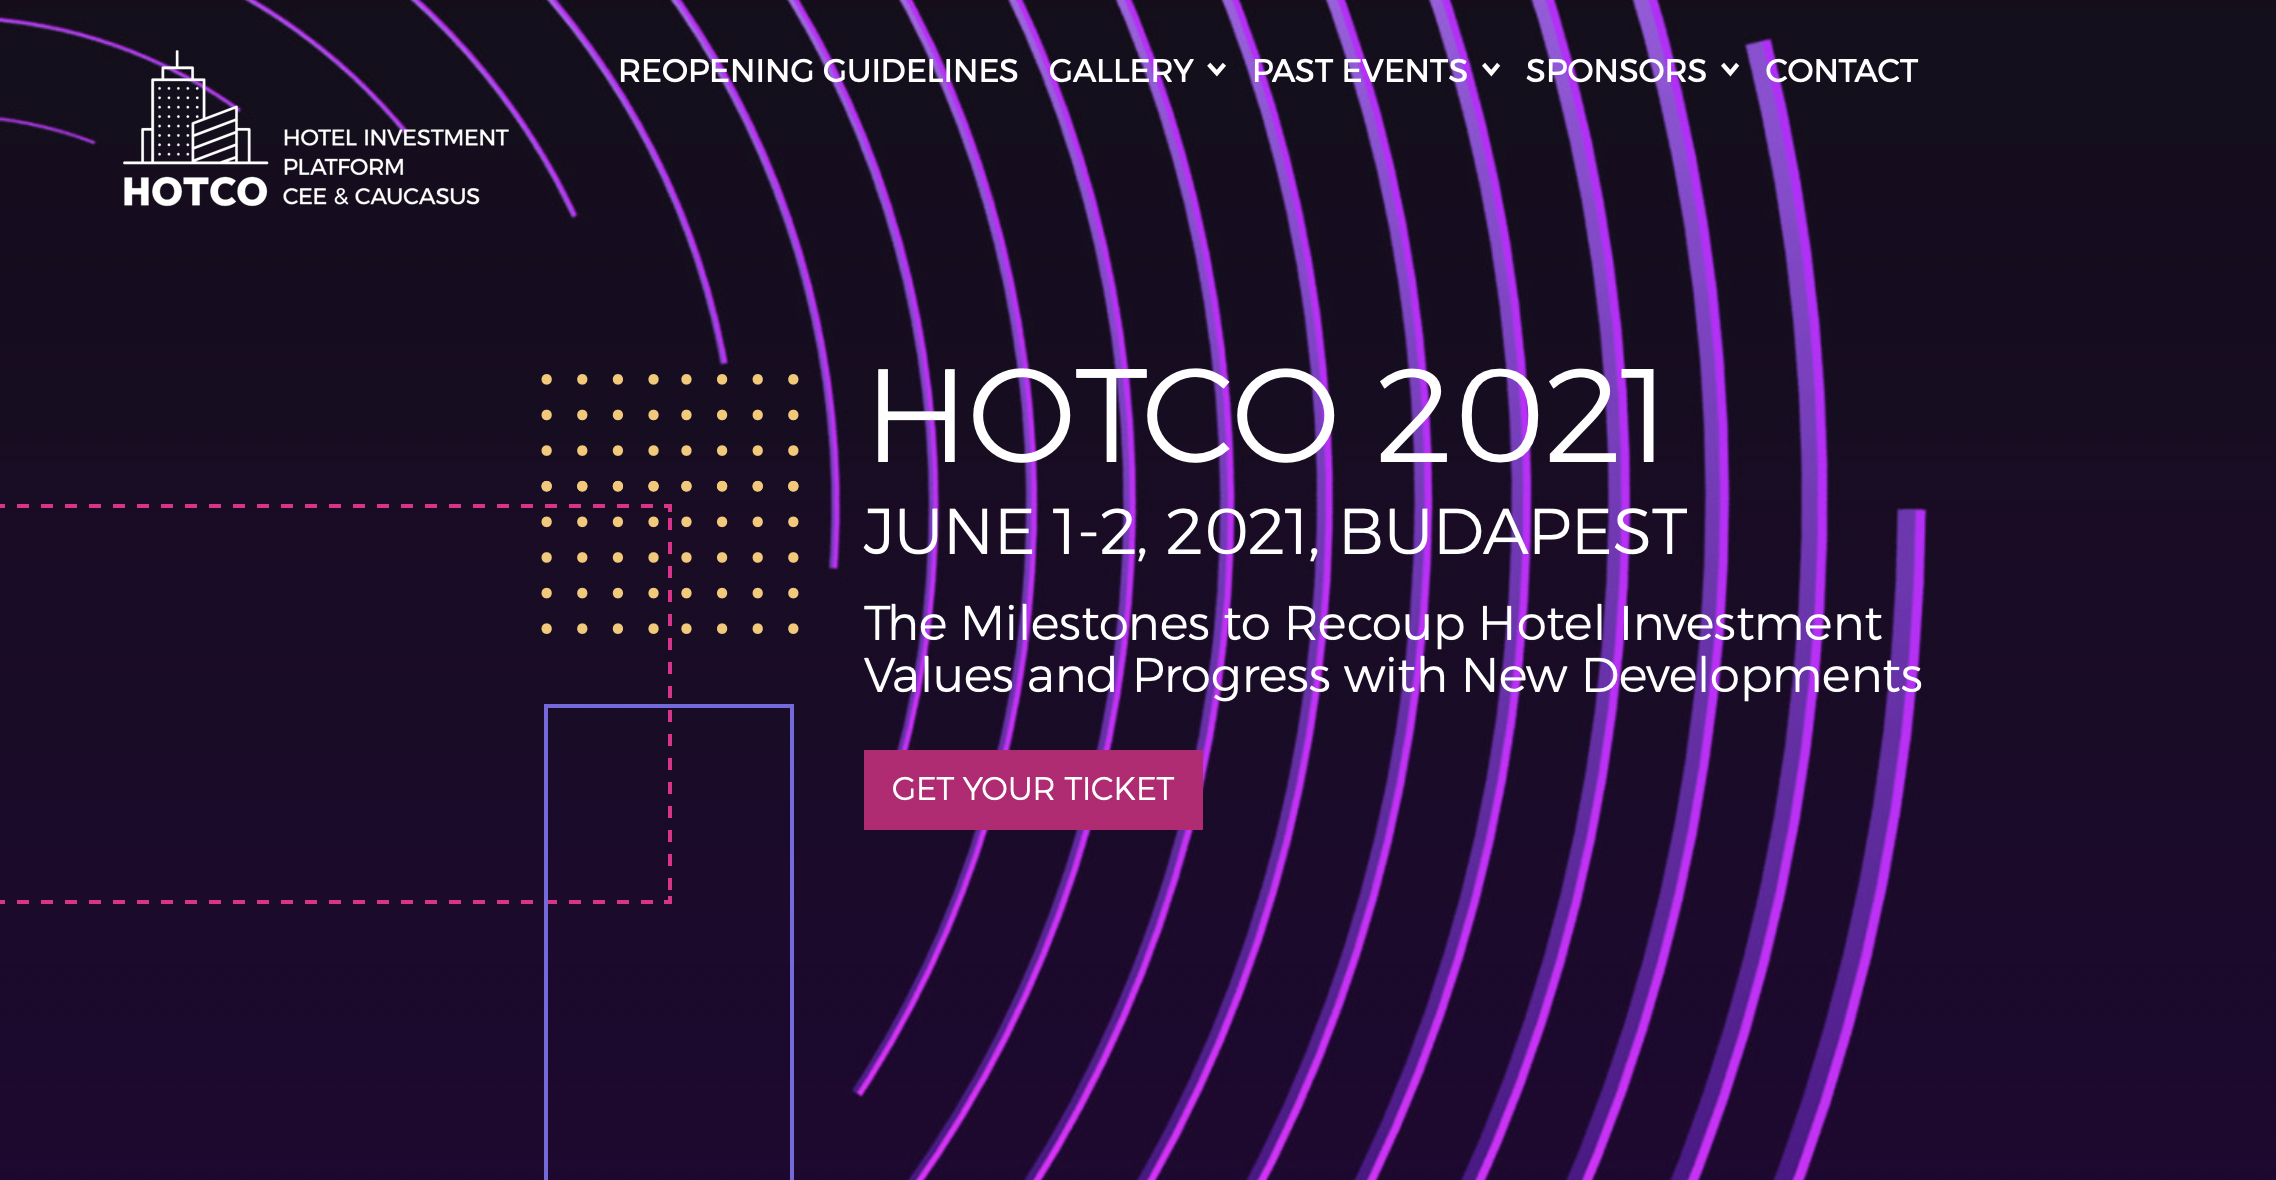 HOTCO RETURNS on JUNE 1st